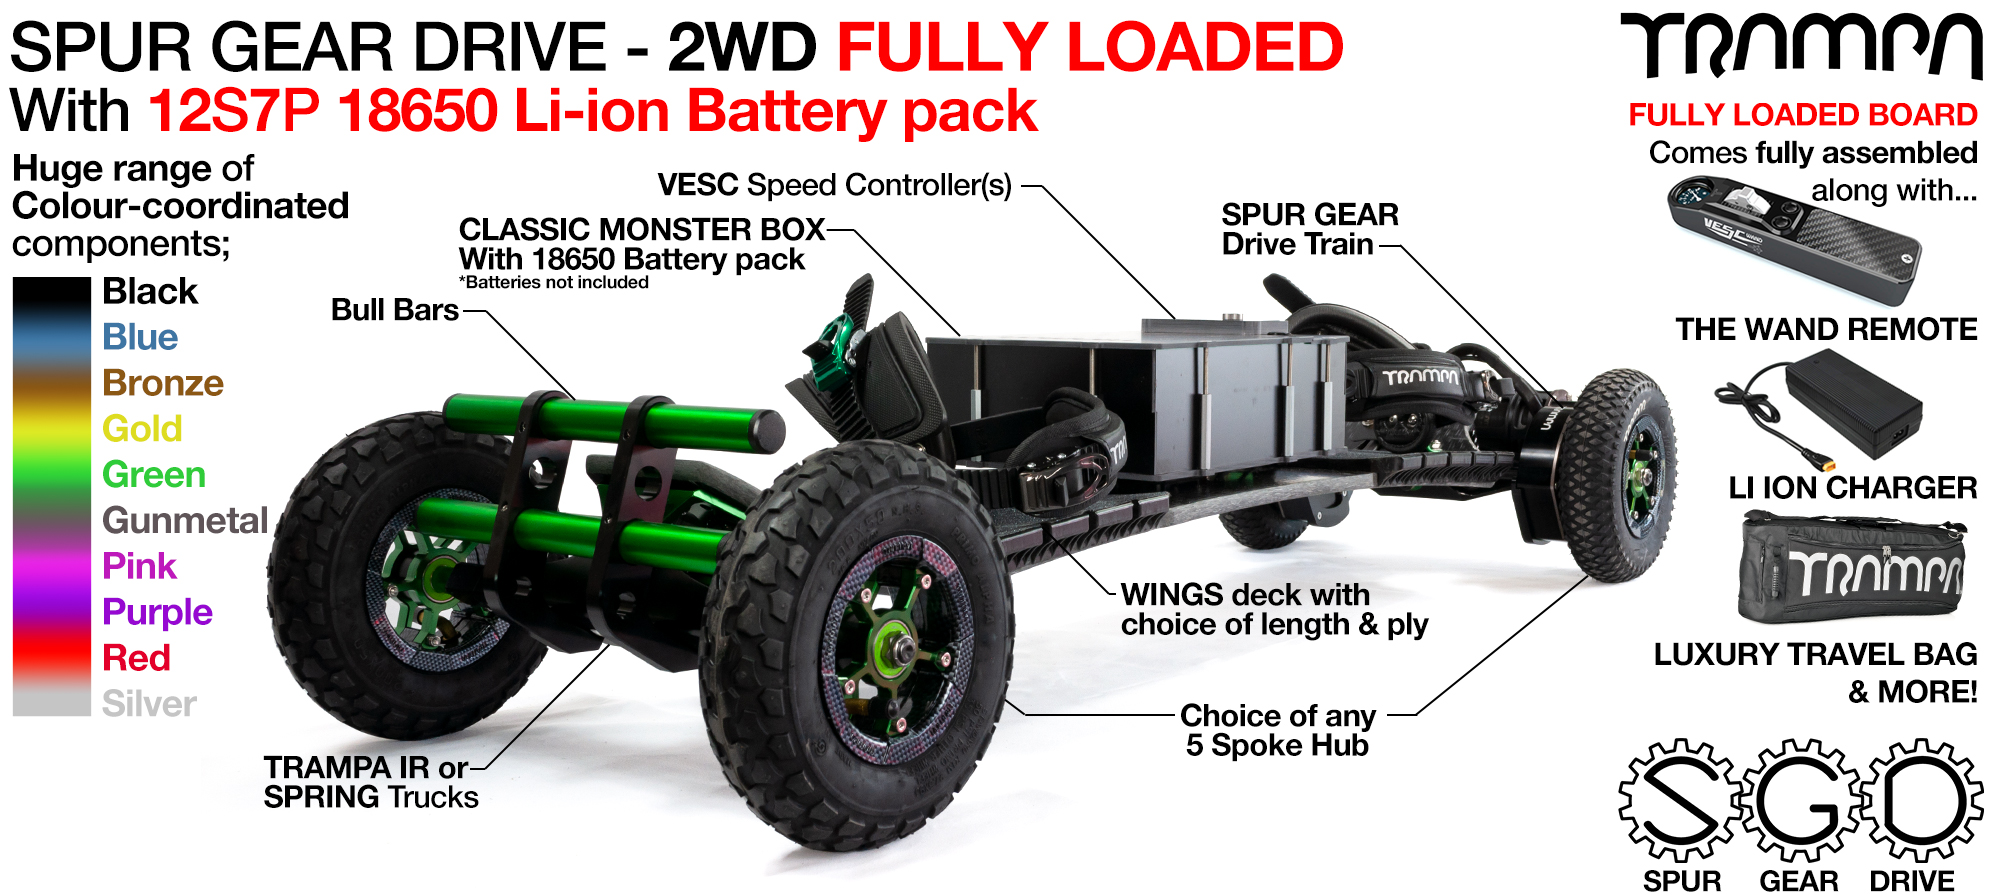 2WD SPUR GEAR DRIVE Electric Mountainboard - FULLY LOADED 18650 Cell Pack supplied with The WAND, a 12A Charger & Bull Bars as standard!!